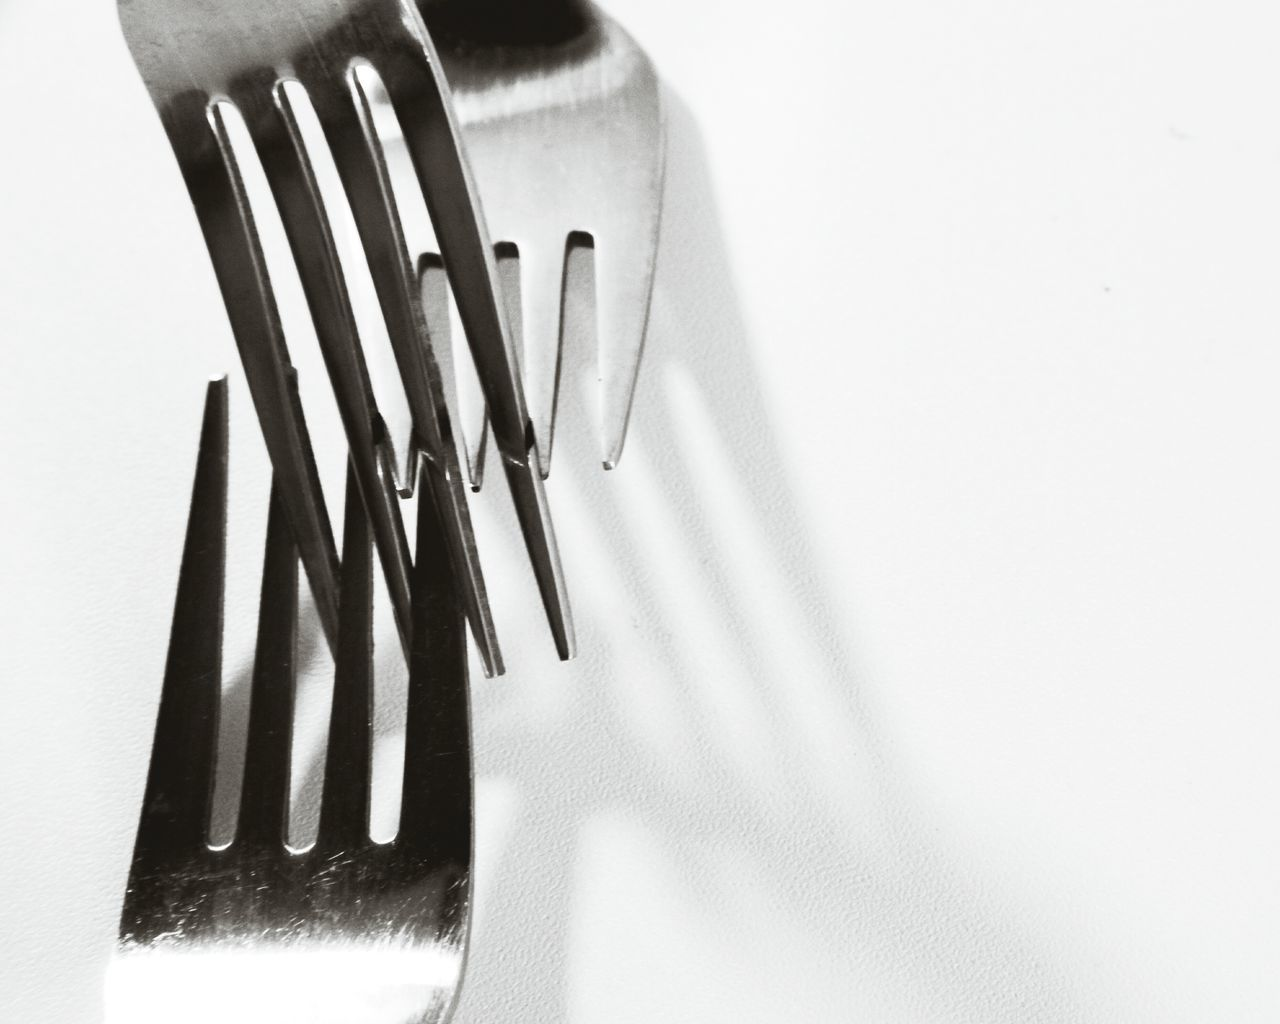 Close-Up Of Forks On White Table